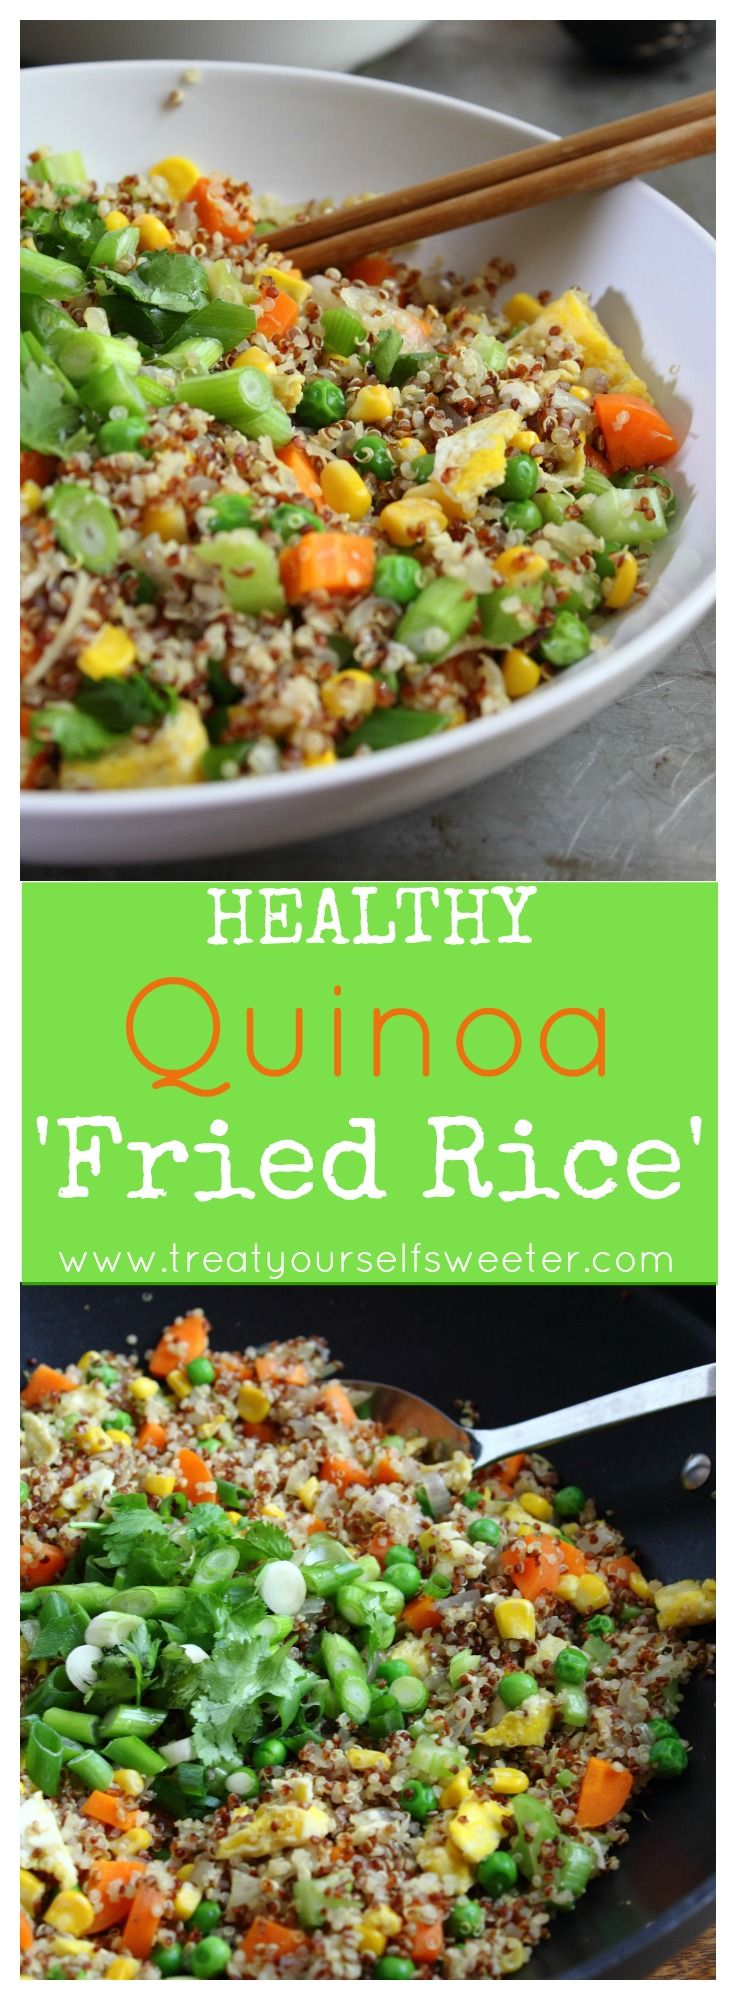 Quinoa 'Fried Rice'; fluffy quinoa, crispy vegetables and subtle flavours of ginger, garlic and soy. This is a fabulous side or main meal.